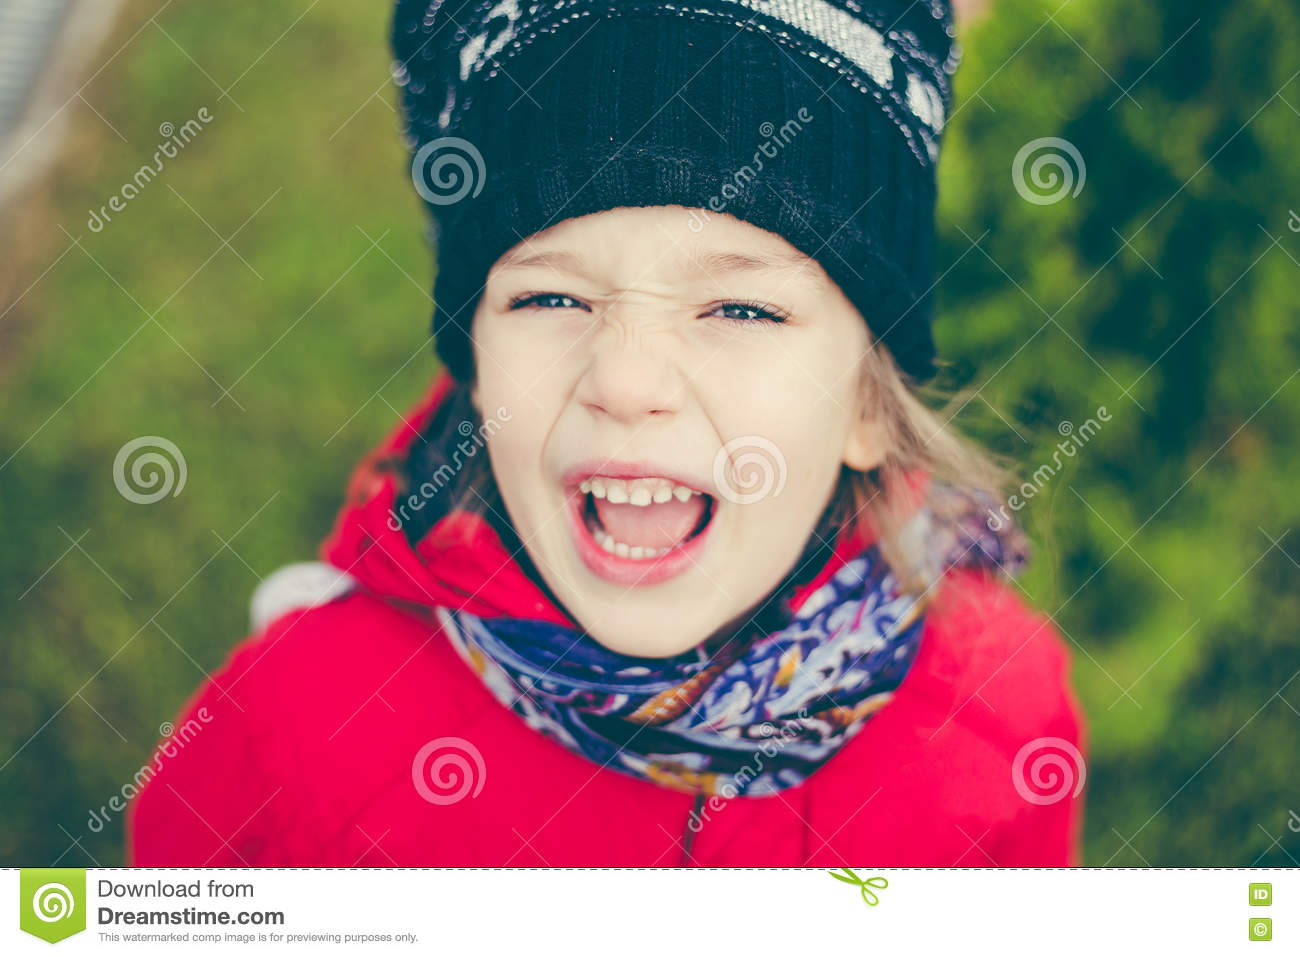 6788cc0d1 Cute Girl In A Jacket And Hat On The Stree Stock Image - Image of ...